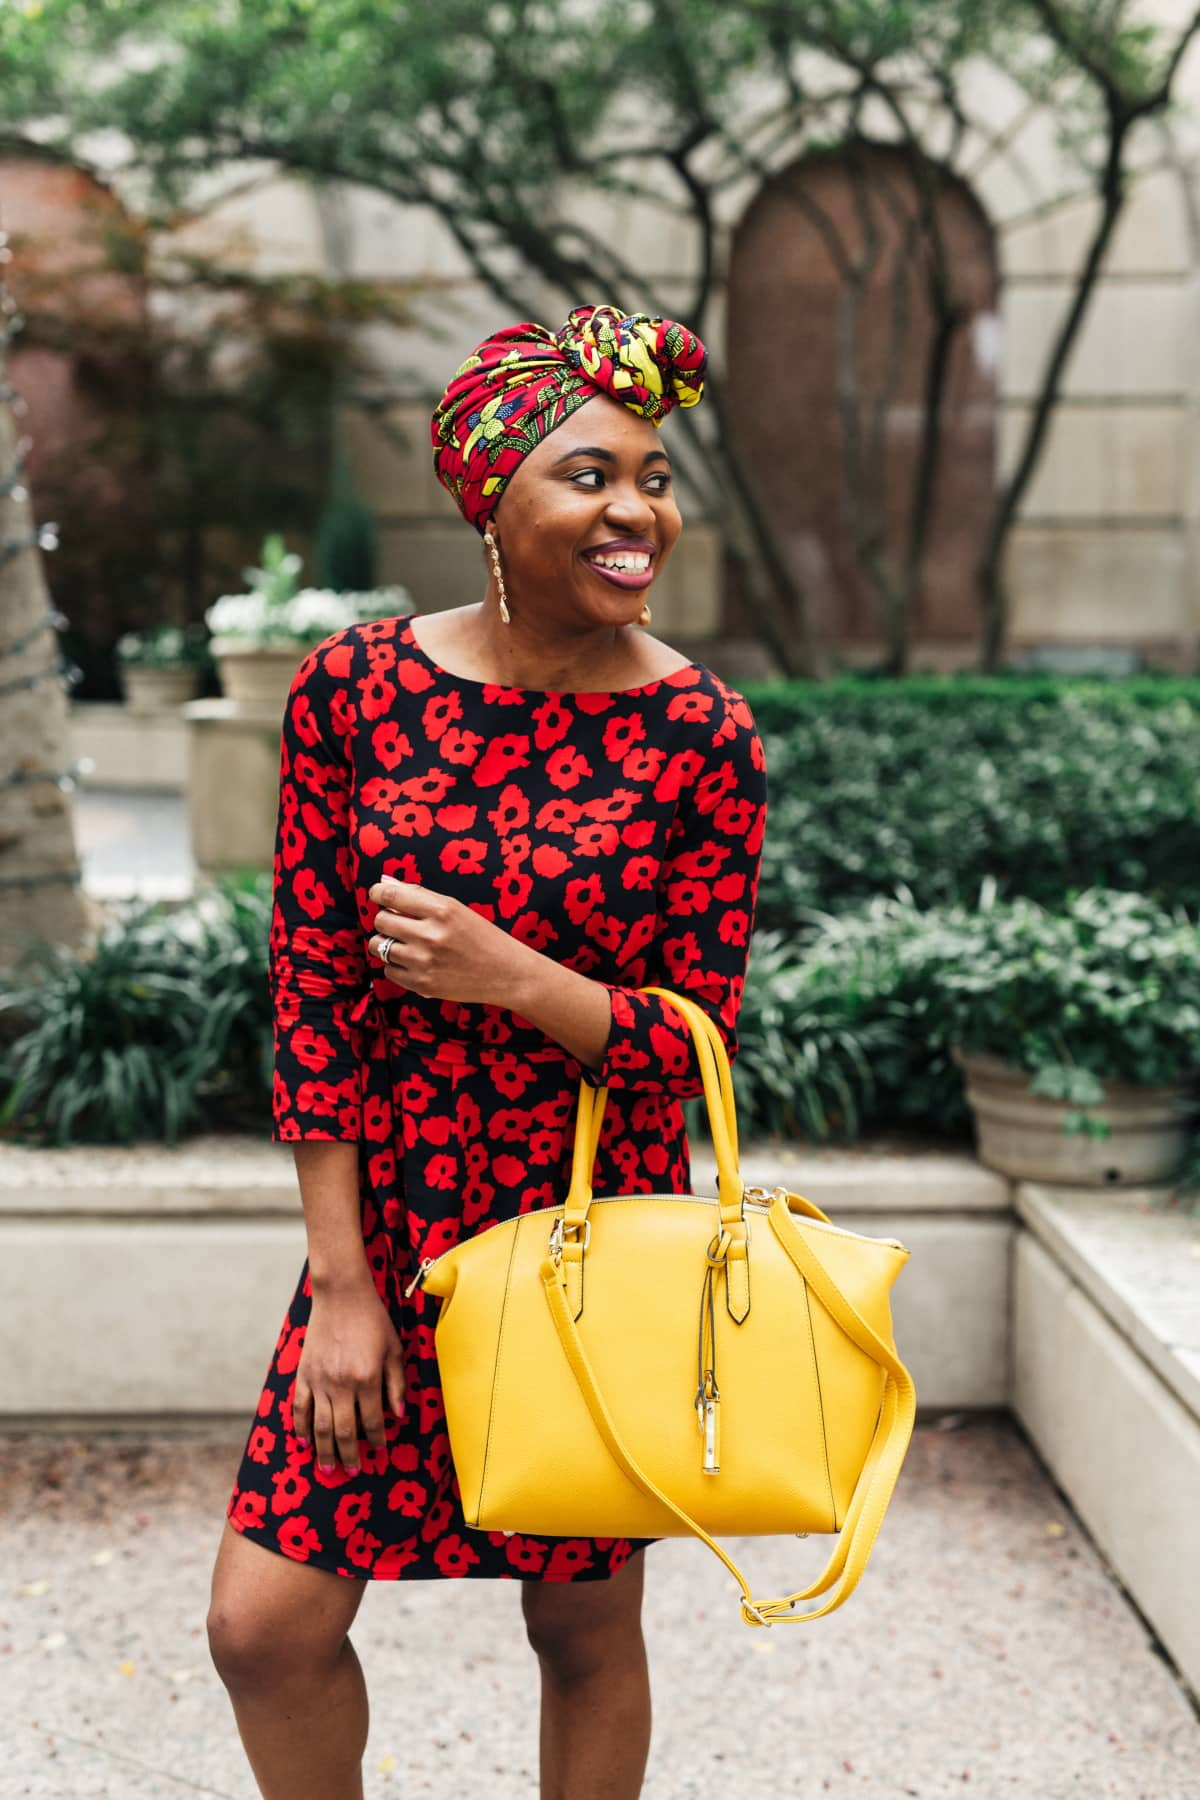 Celebrating the union between two cultures rocking an ankara head wrap with a floral dress perfect for spring and summer fashion. And sharing the best places to score the most stylish African print scarves for women. #africanfashion #floraldress #ankarastyles #turban